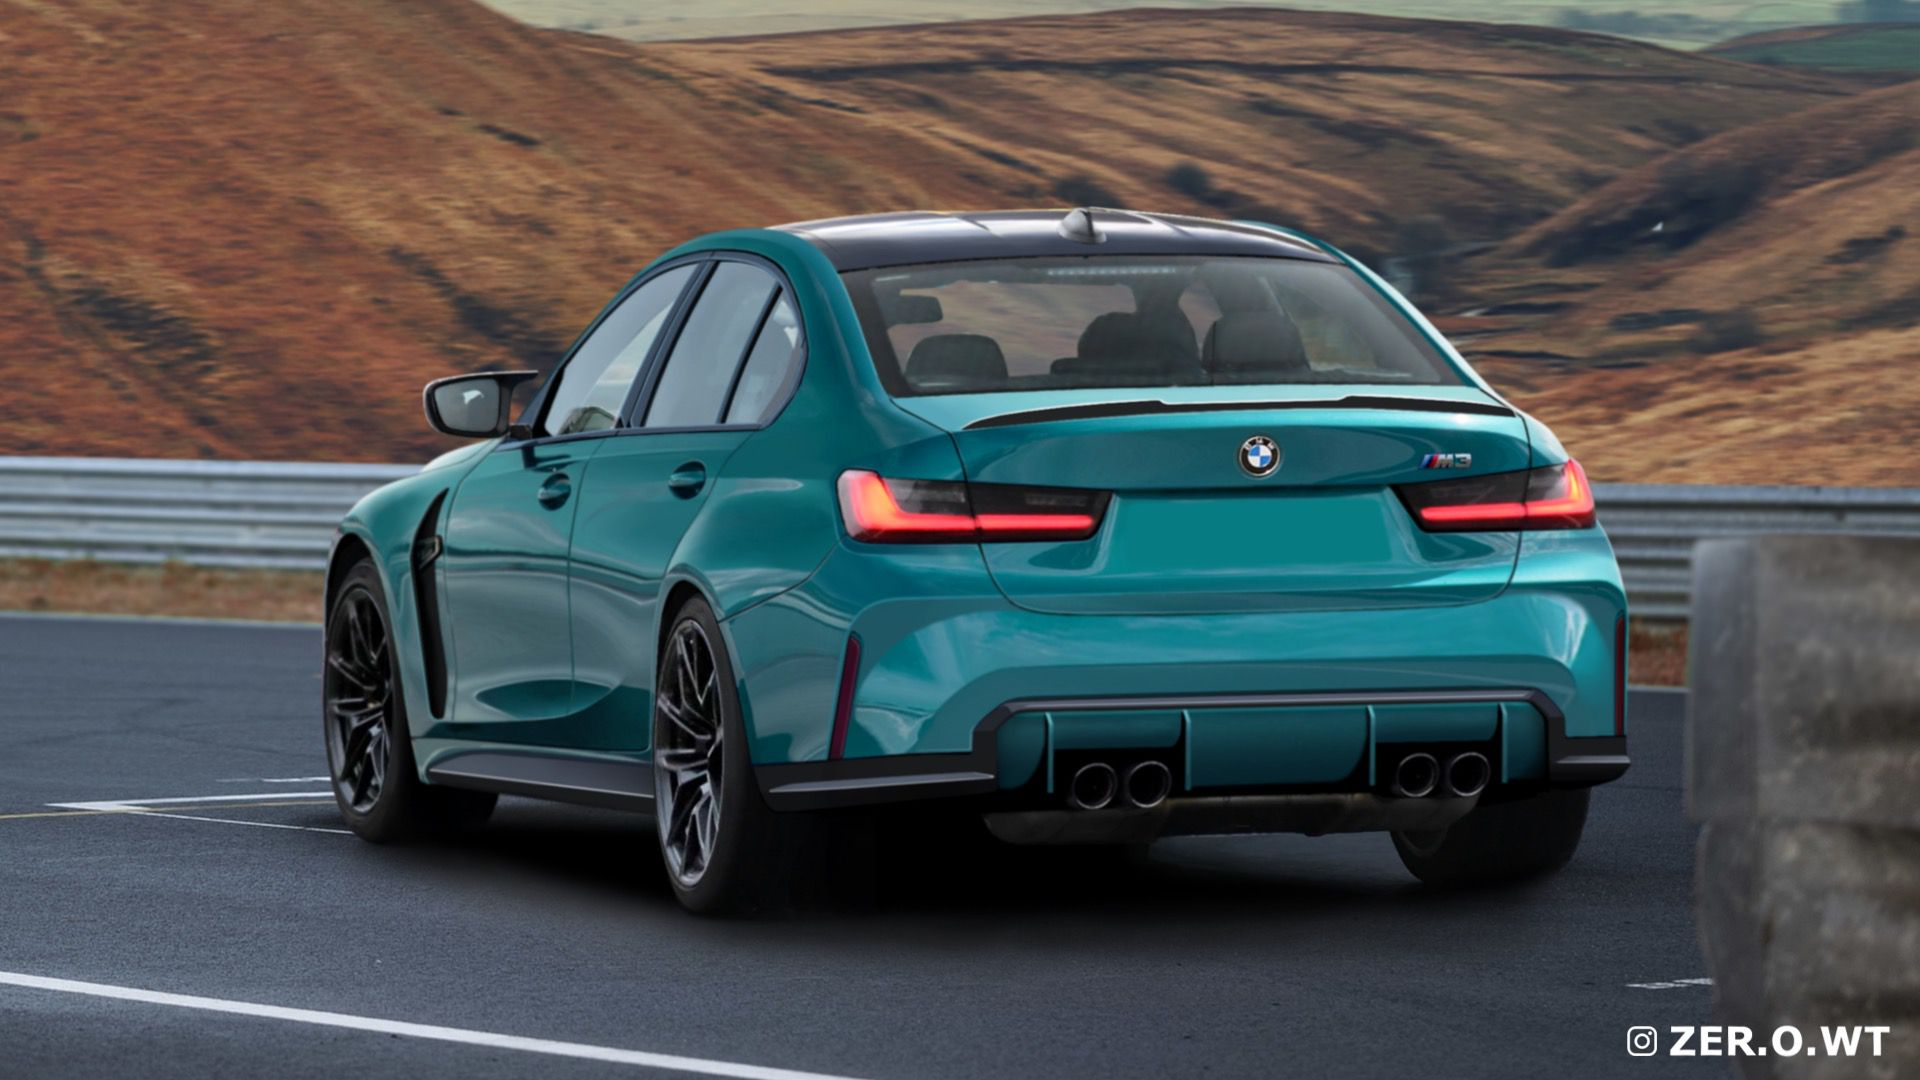 2022 Bmw M3 Gets Rendered From Behind Here Is A New Image